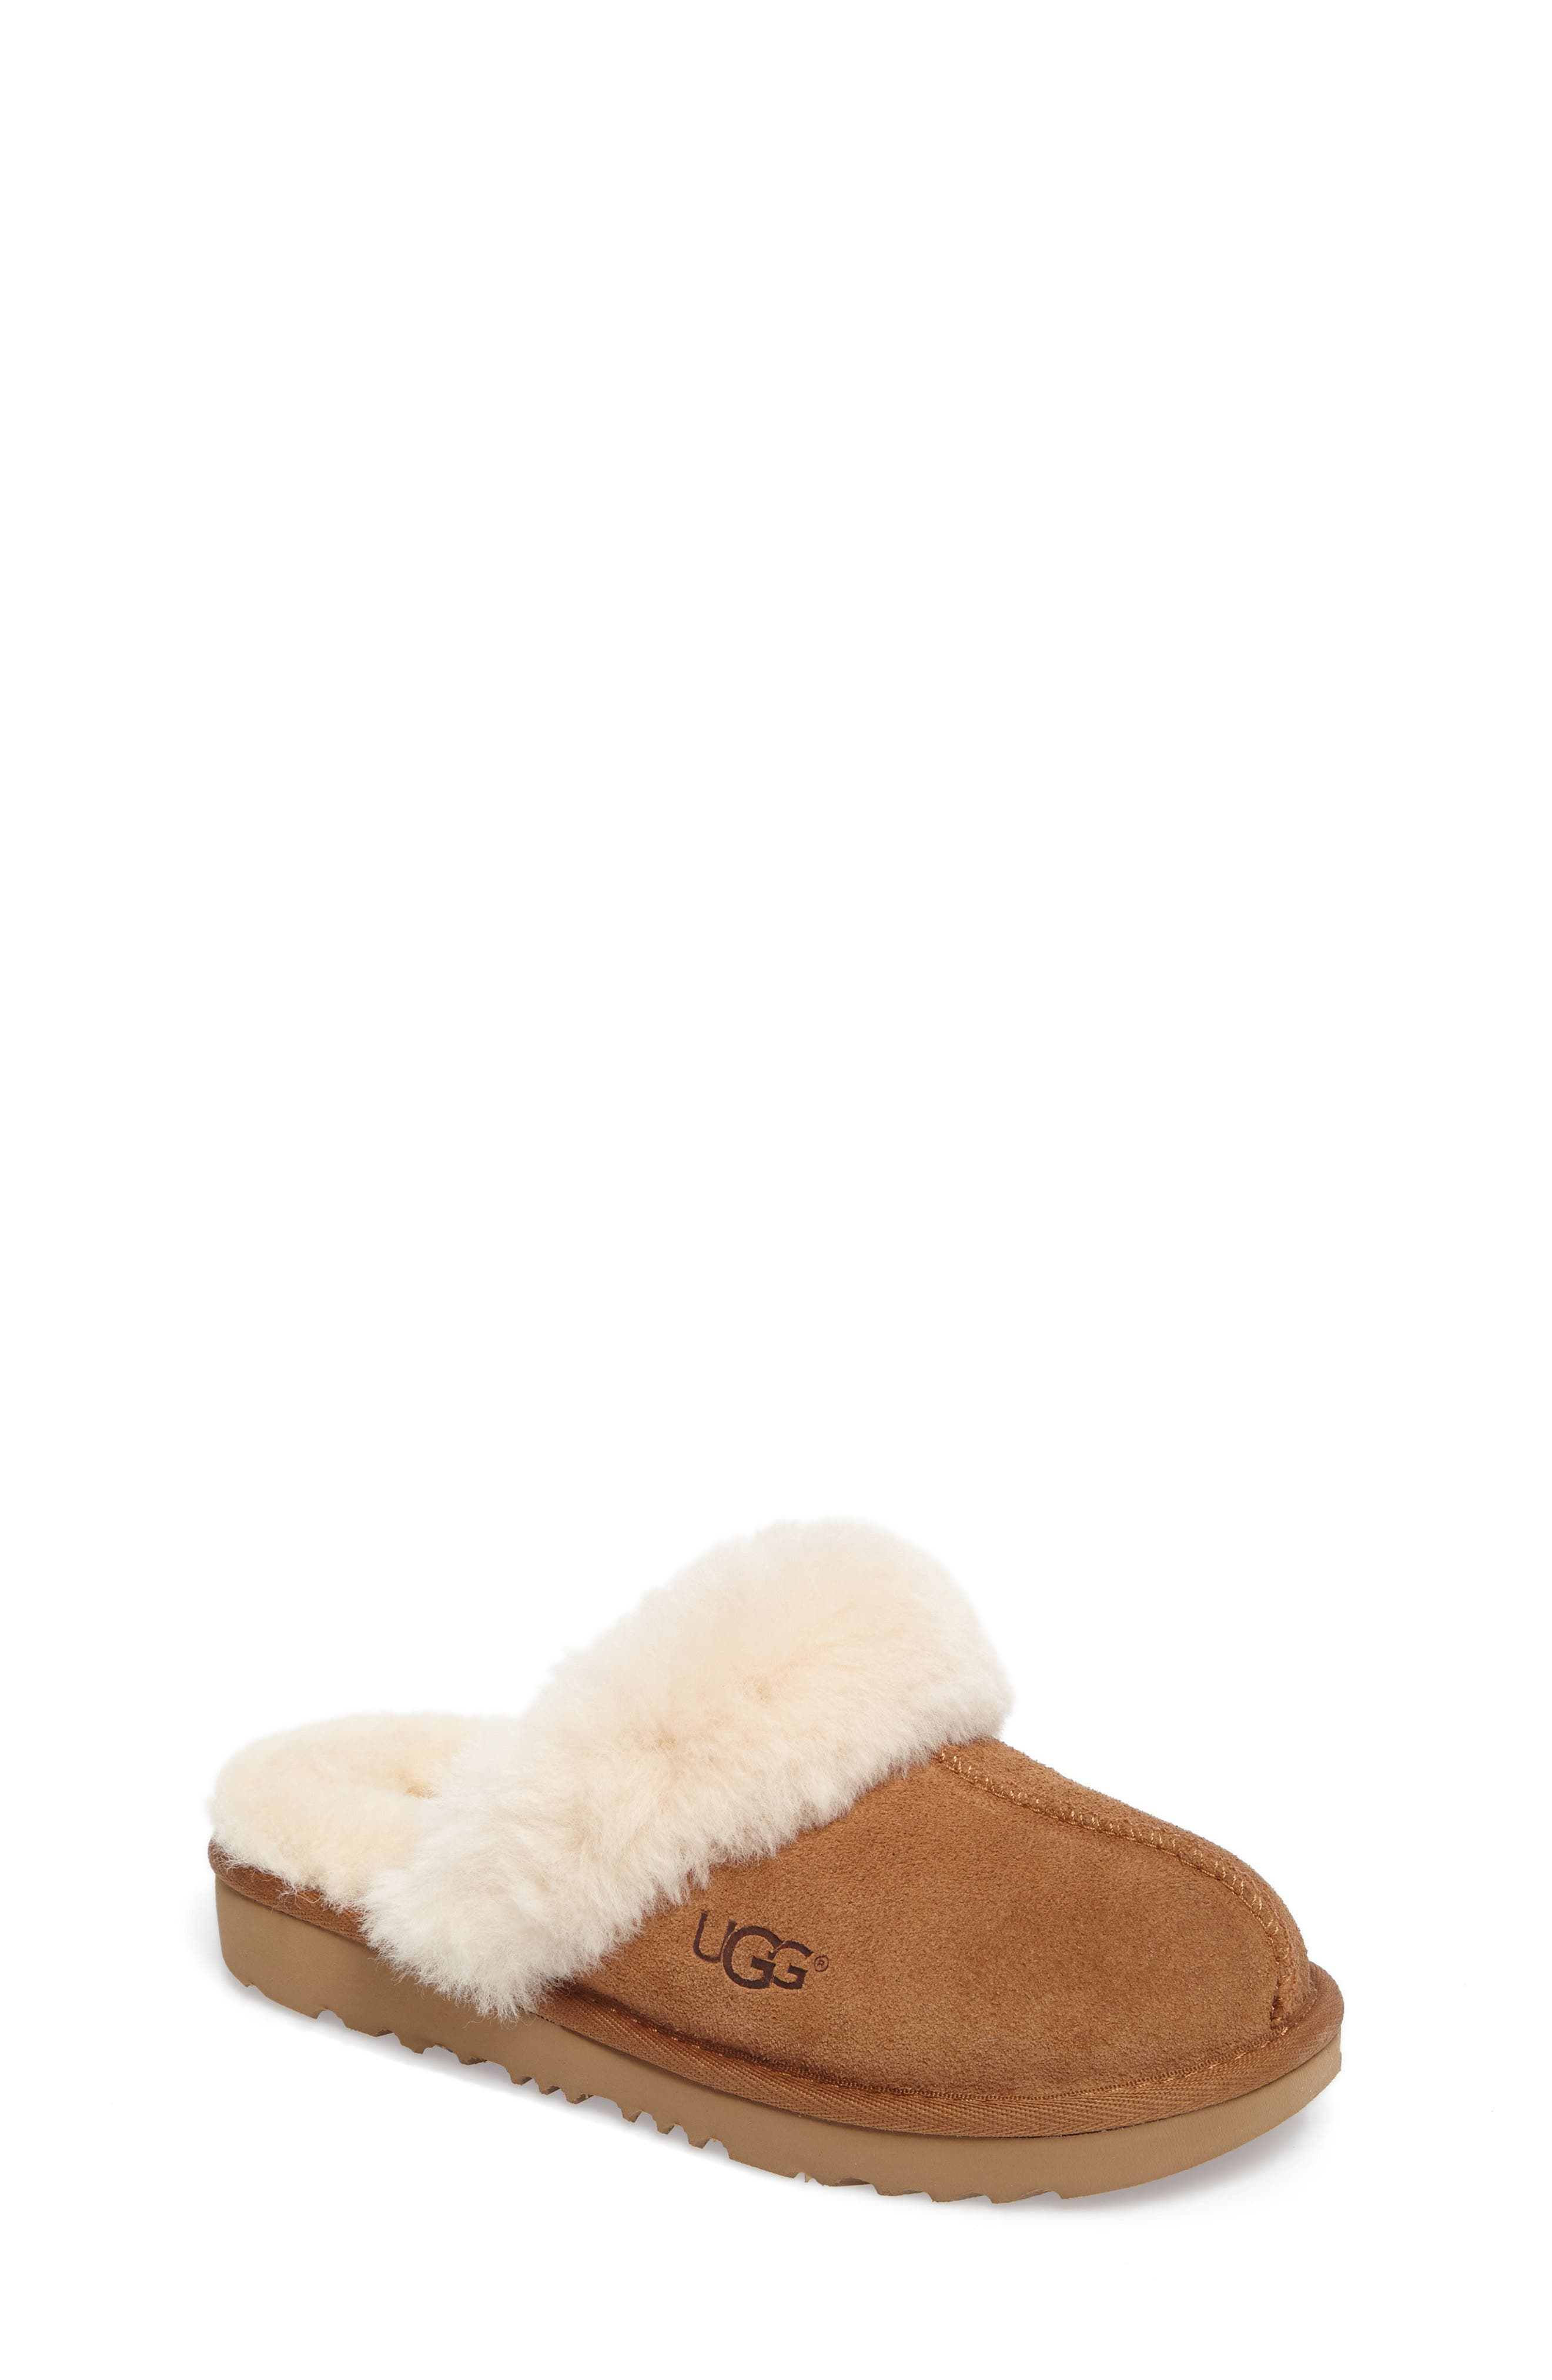 UGG<SUP>®</SUP>, Cozy II Scuff Slipper, Main thumbnail 1, color, CHESTNUT